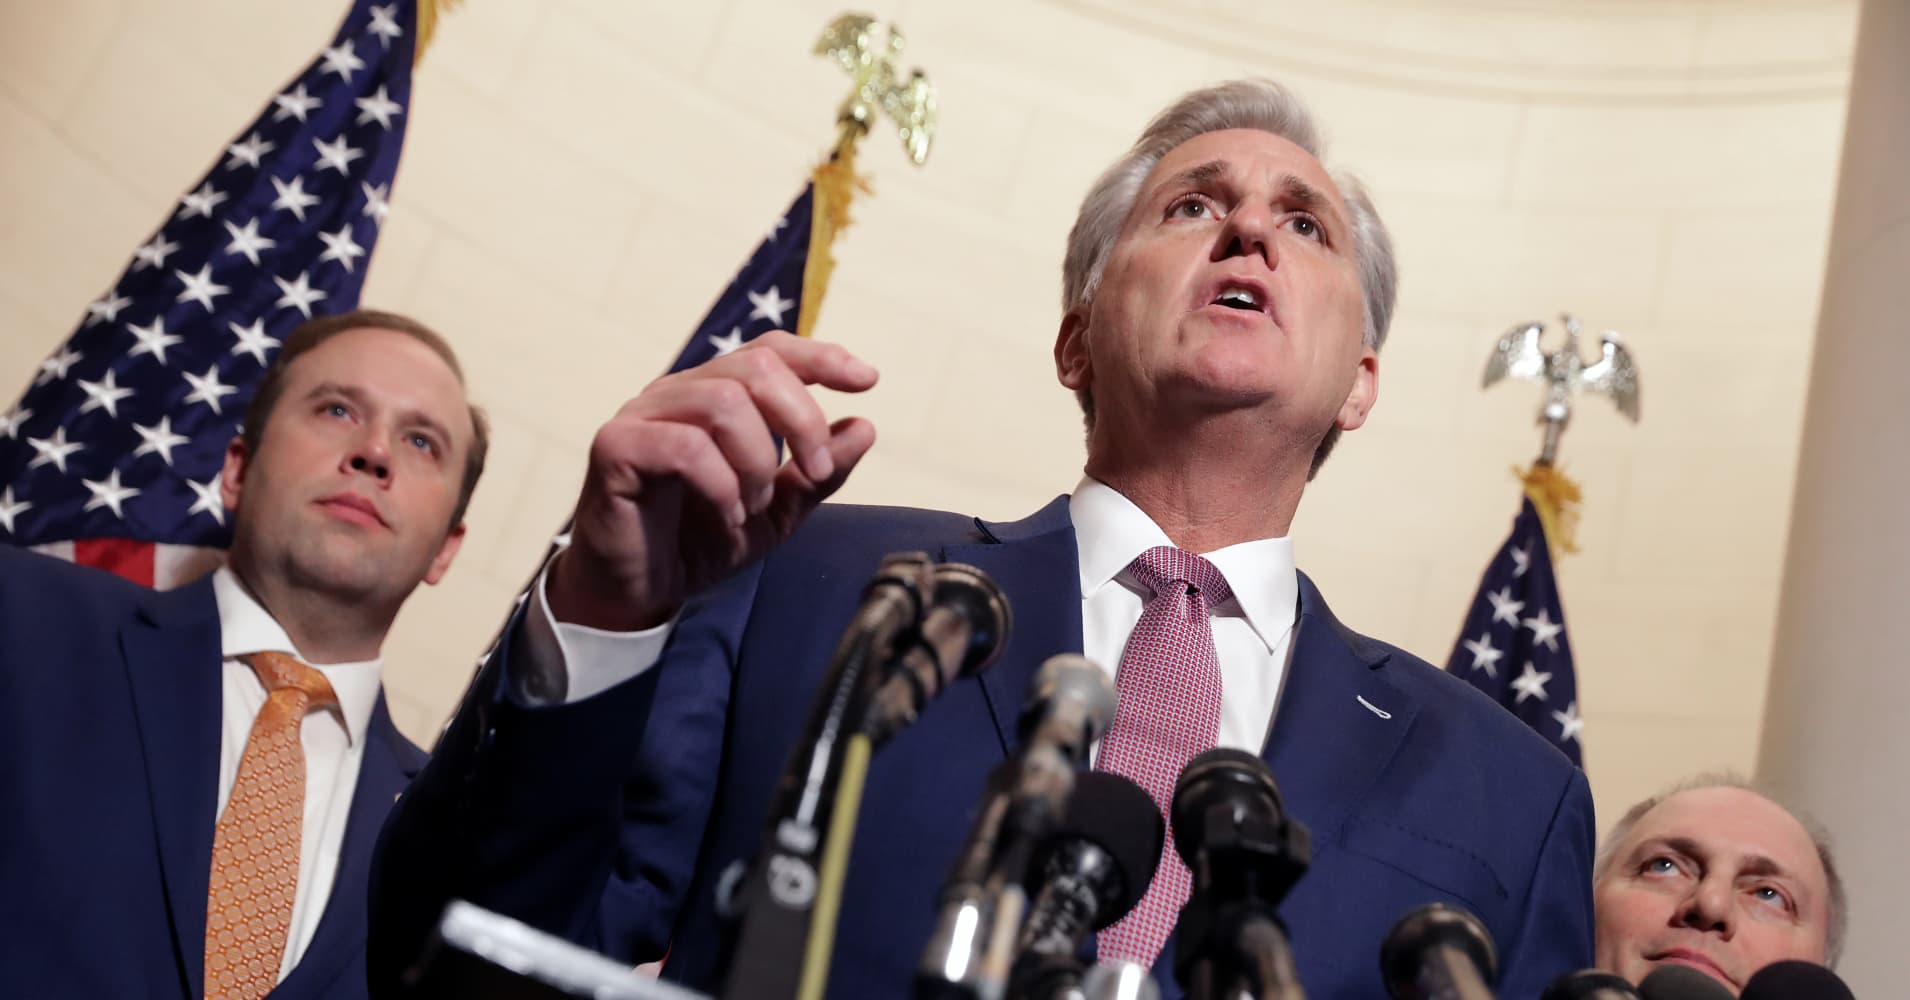 House GOP leader Kevin McCarthy: Pelosi and Democrats caved on Trump's border barrier demand